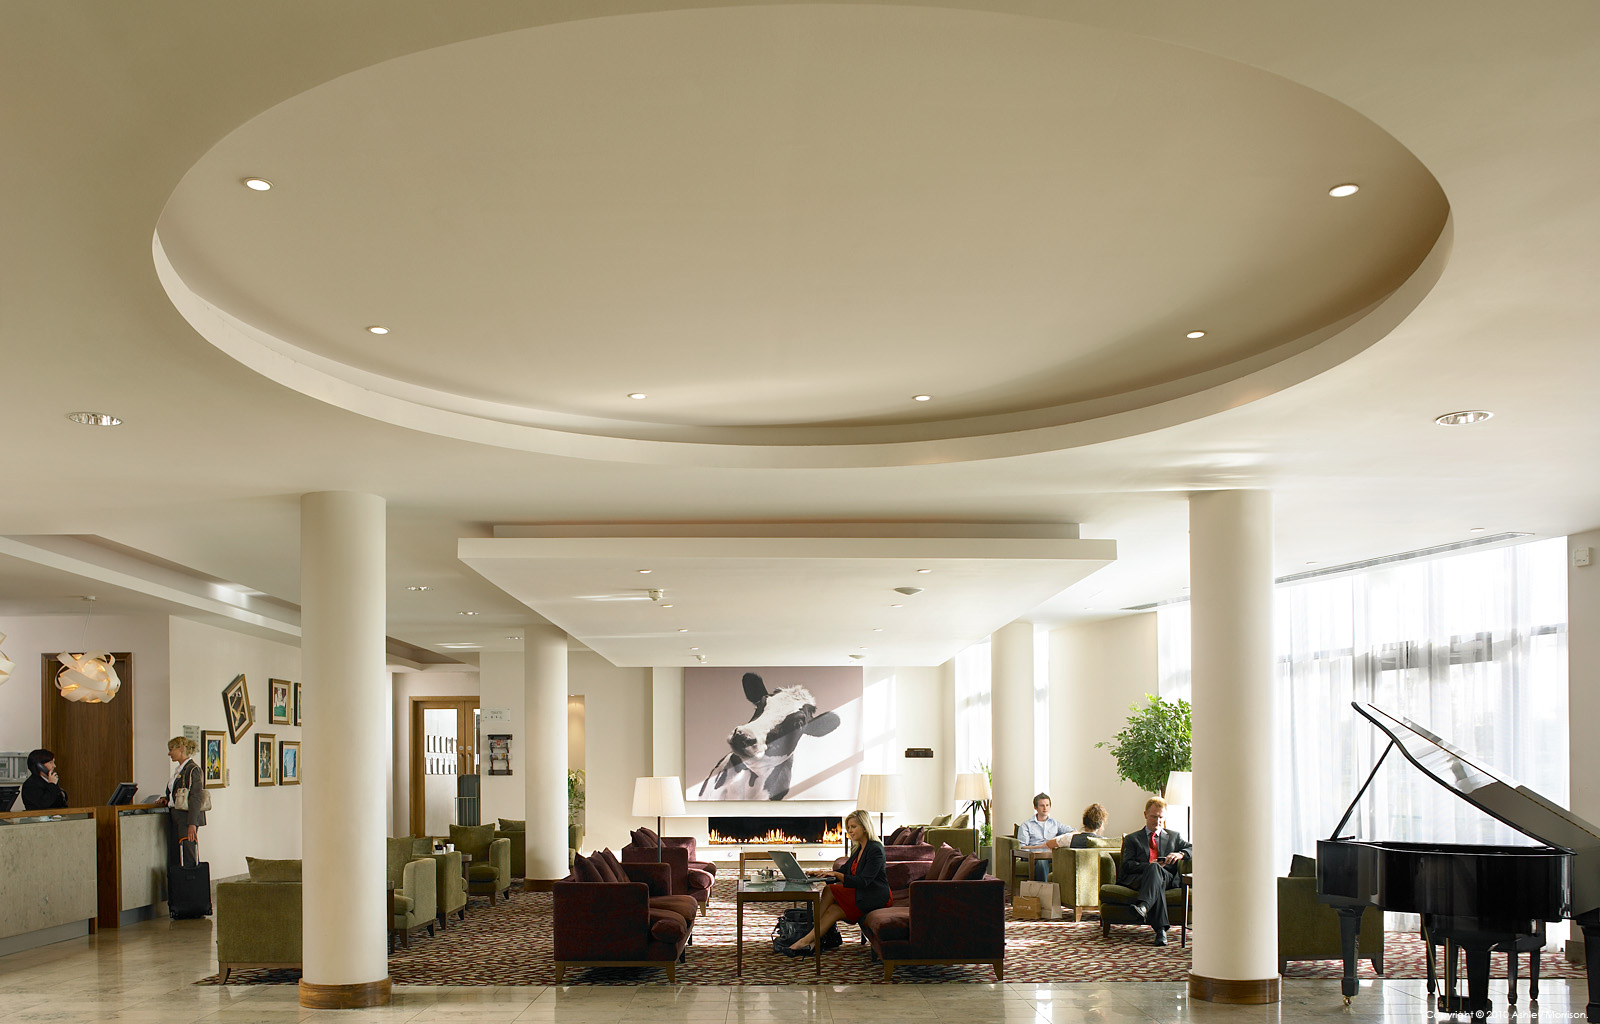 The Lobby at the CityNorth Hotel near Gormanston in Co Meath.